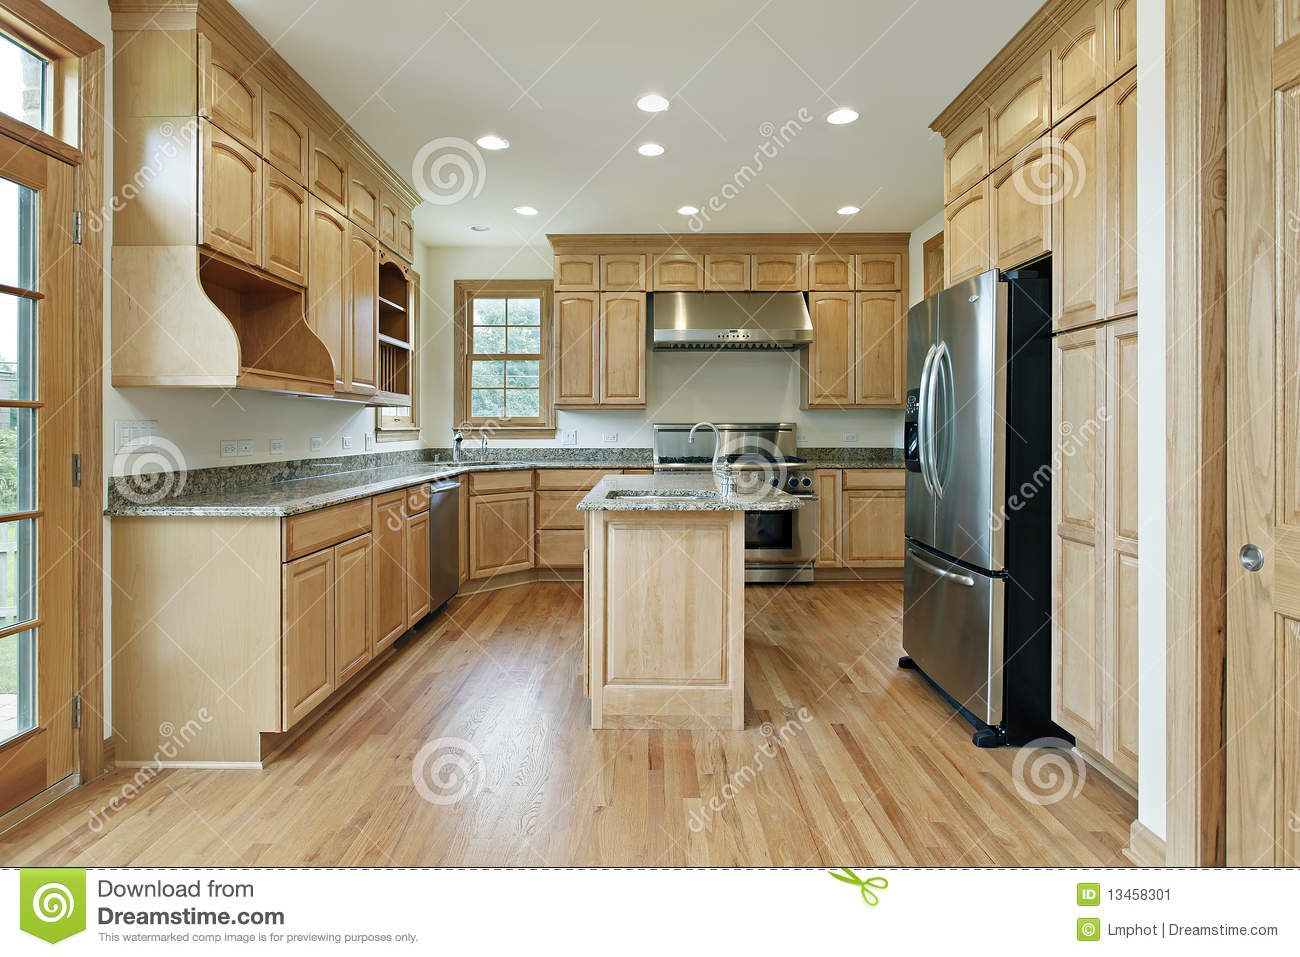 kitchen with oak wood cabinetry stock image image from Oak Wood ...